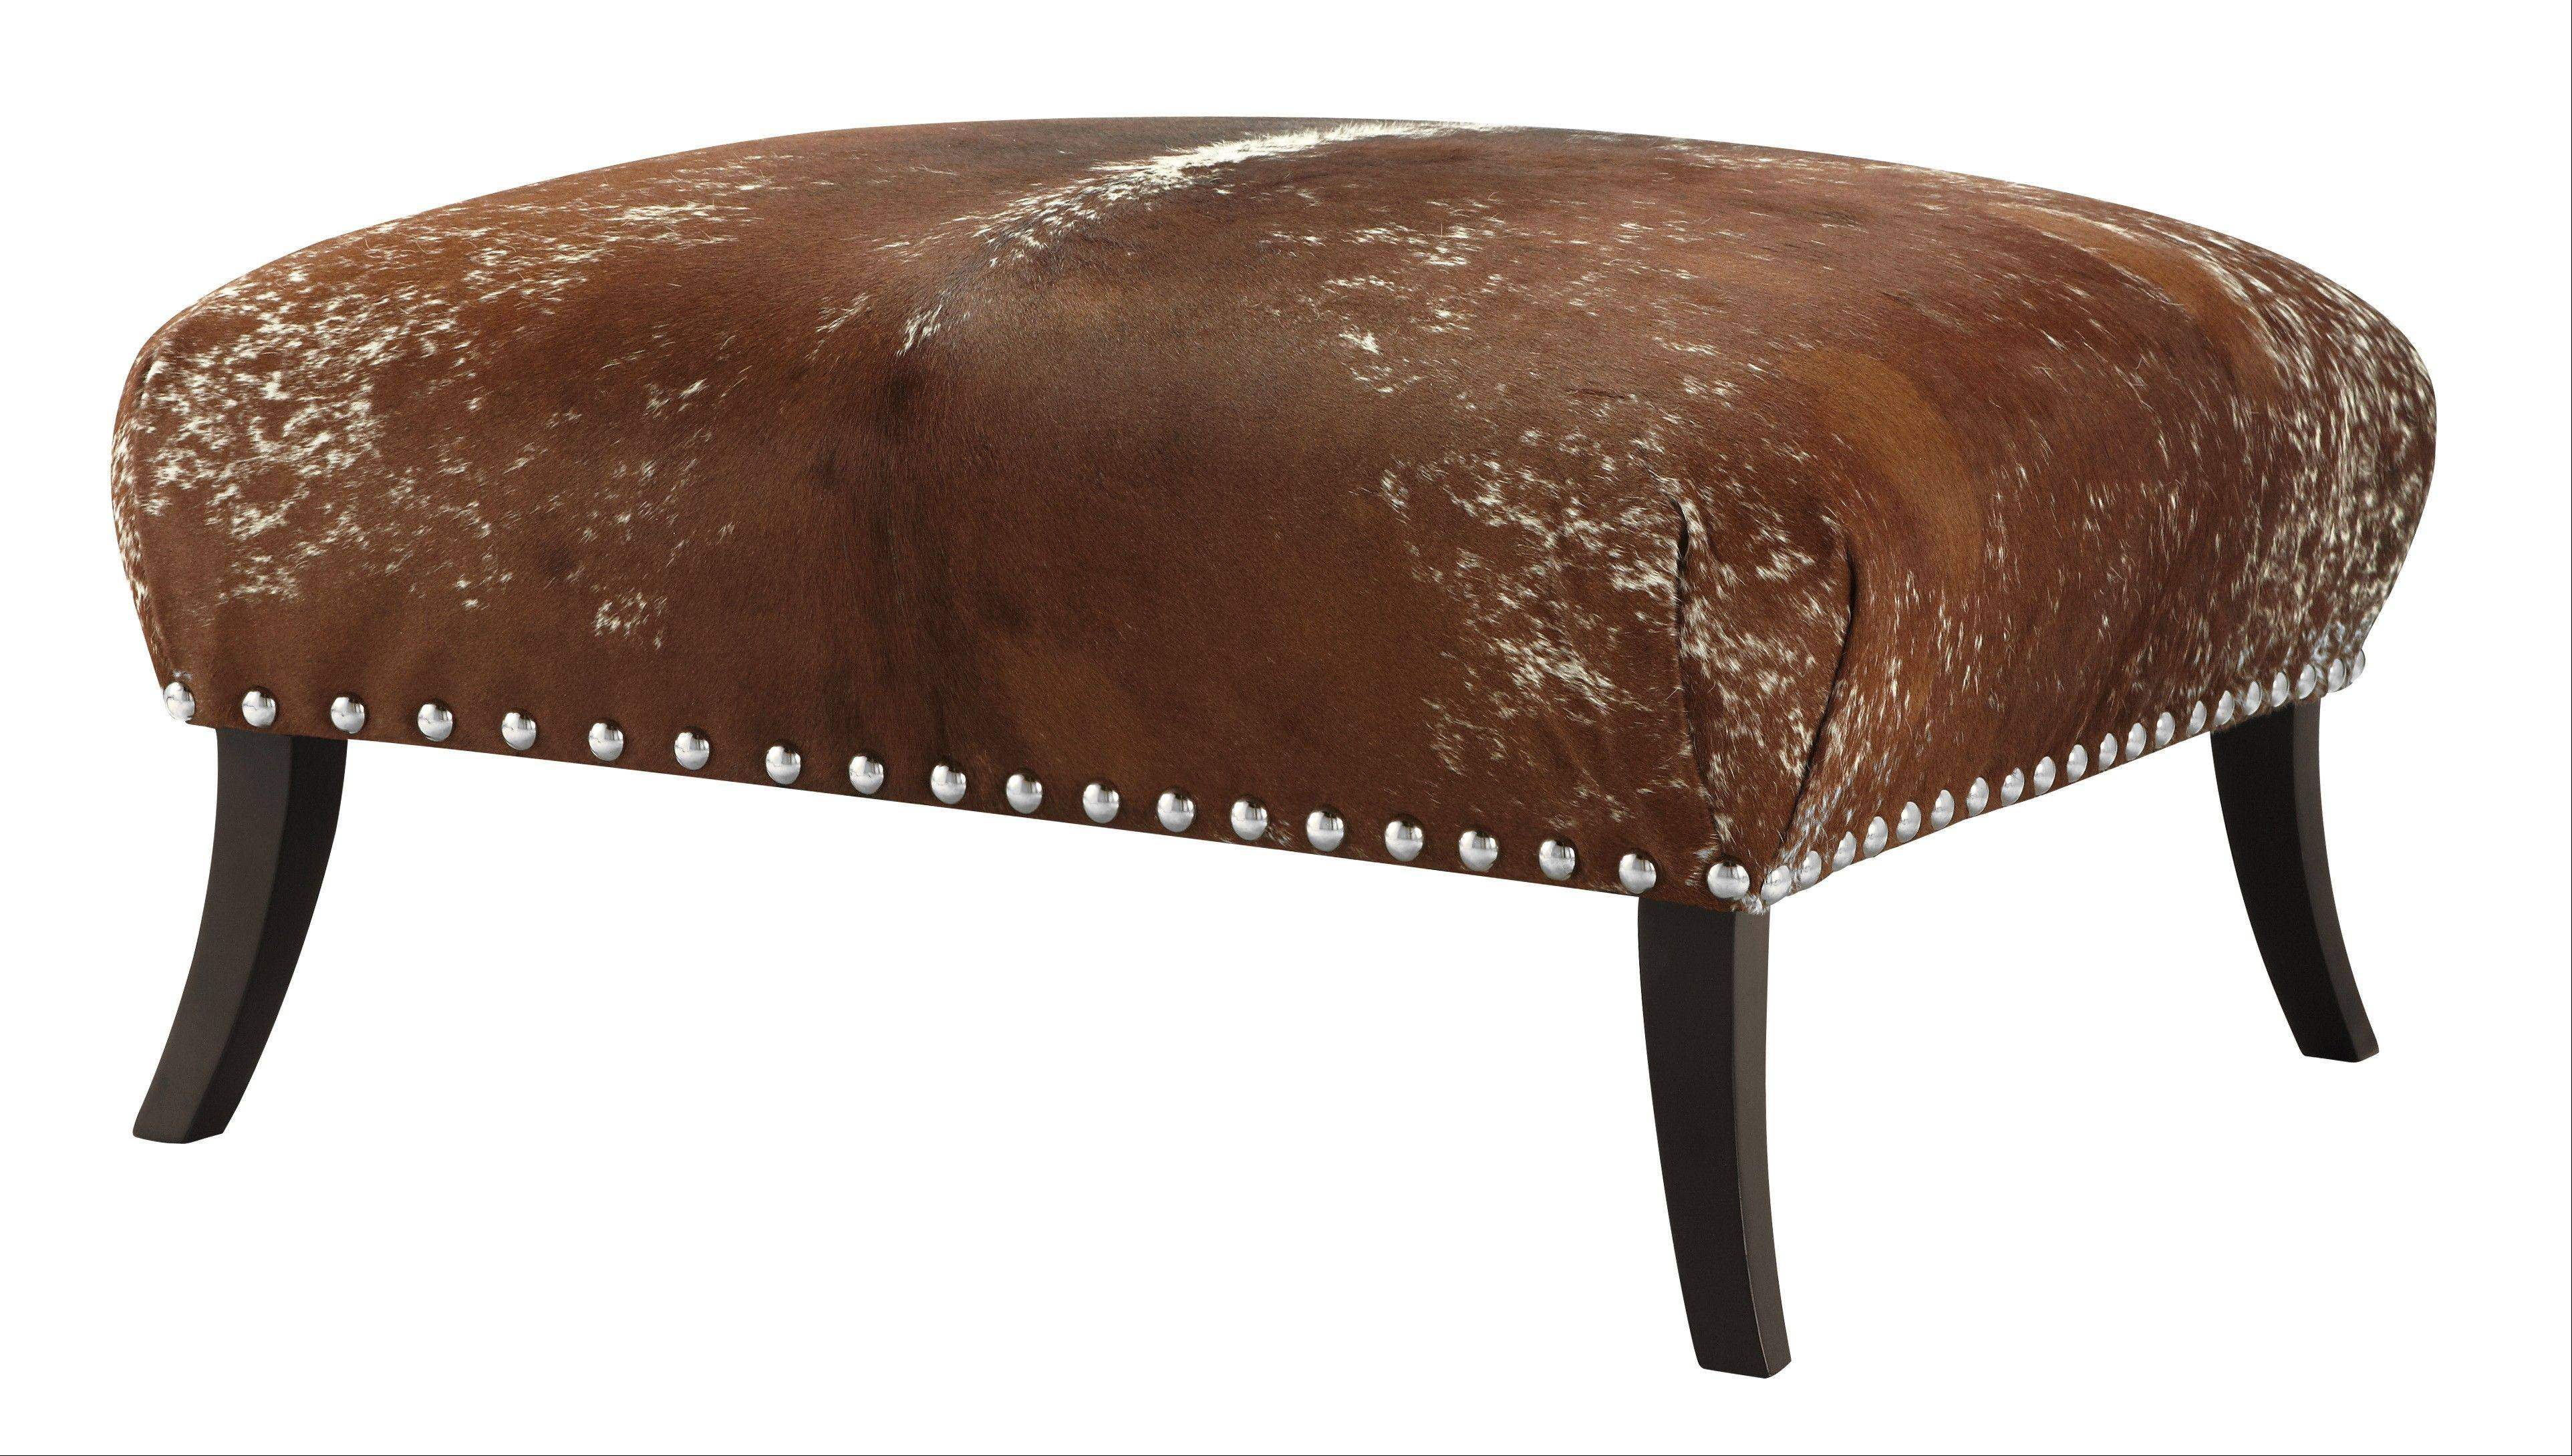 Both nail heads and rivets are having a moment in contemporary decor. On some pieces, they reinforce traditional elegance; and on others, they offer an urban, edgier aesthetic. The Alpine Estates hair-on-hide ottoman puts a modern spin on Old West furniture.